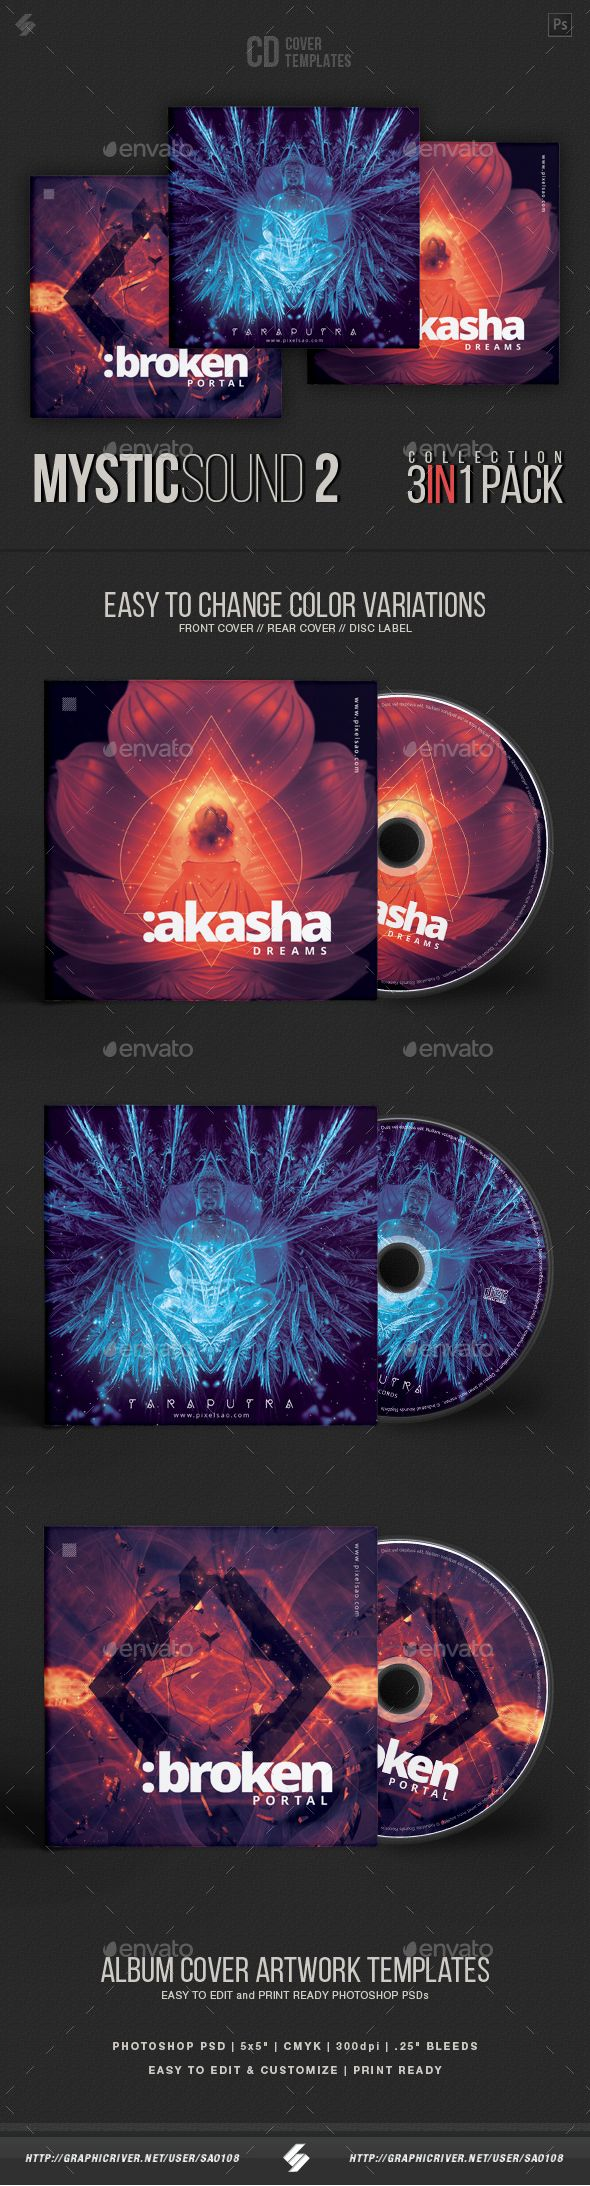 mystic sound collection 2 - #cd cover artwork templates bundle, Powerpoint templates